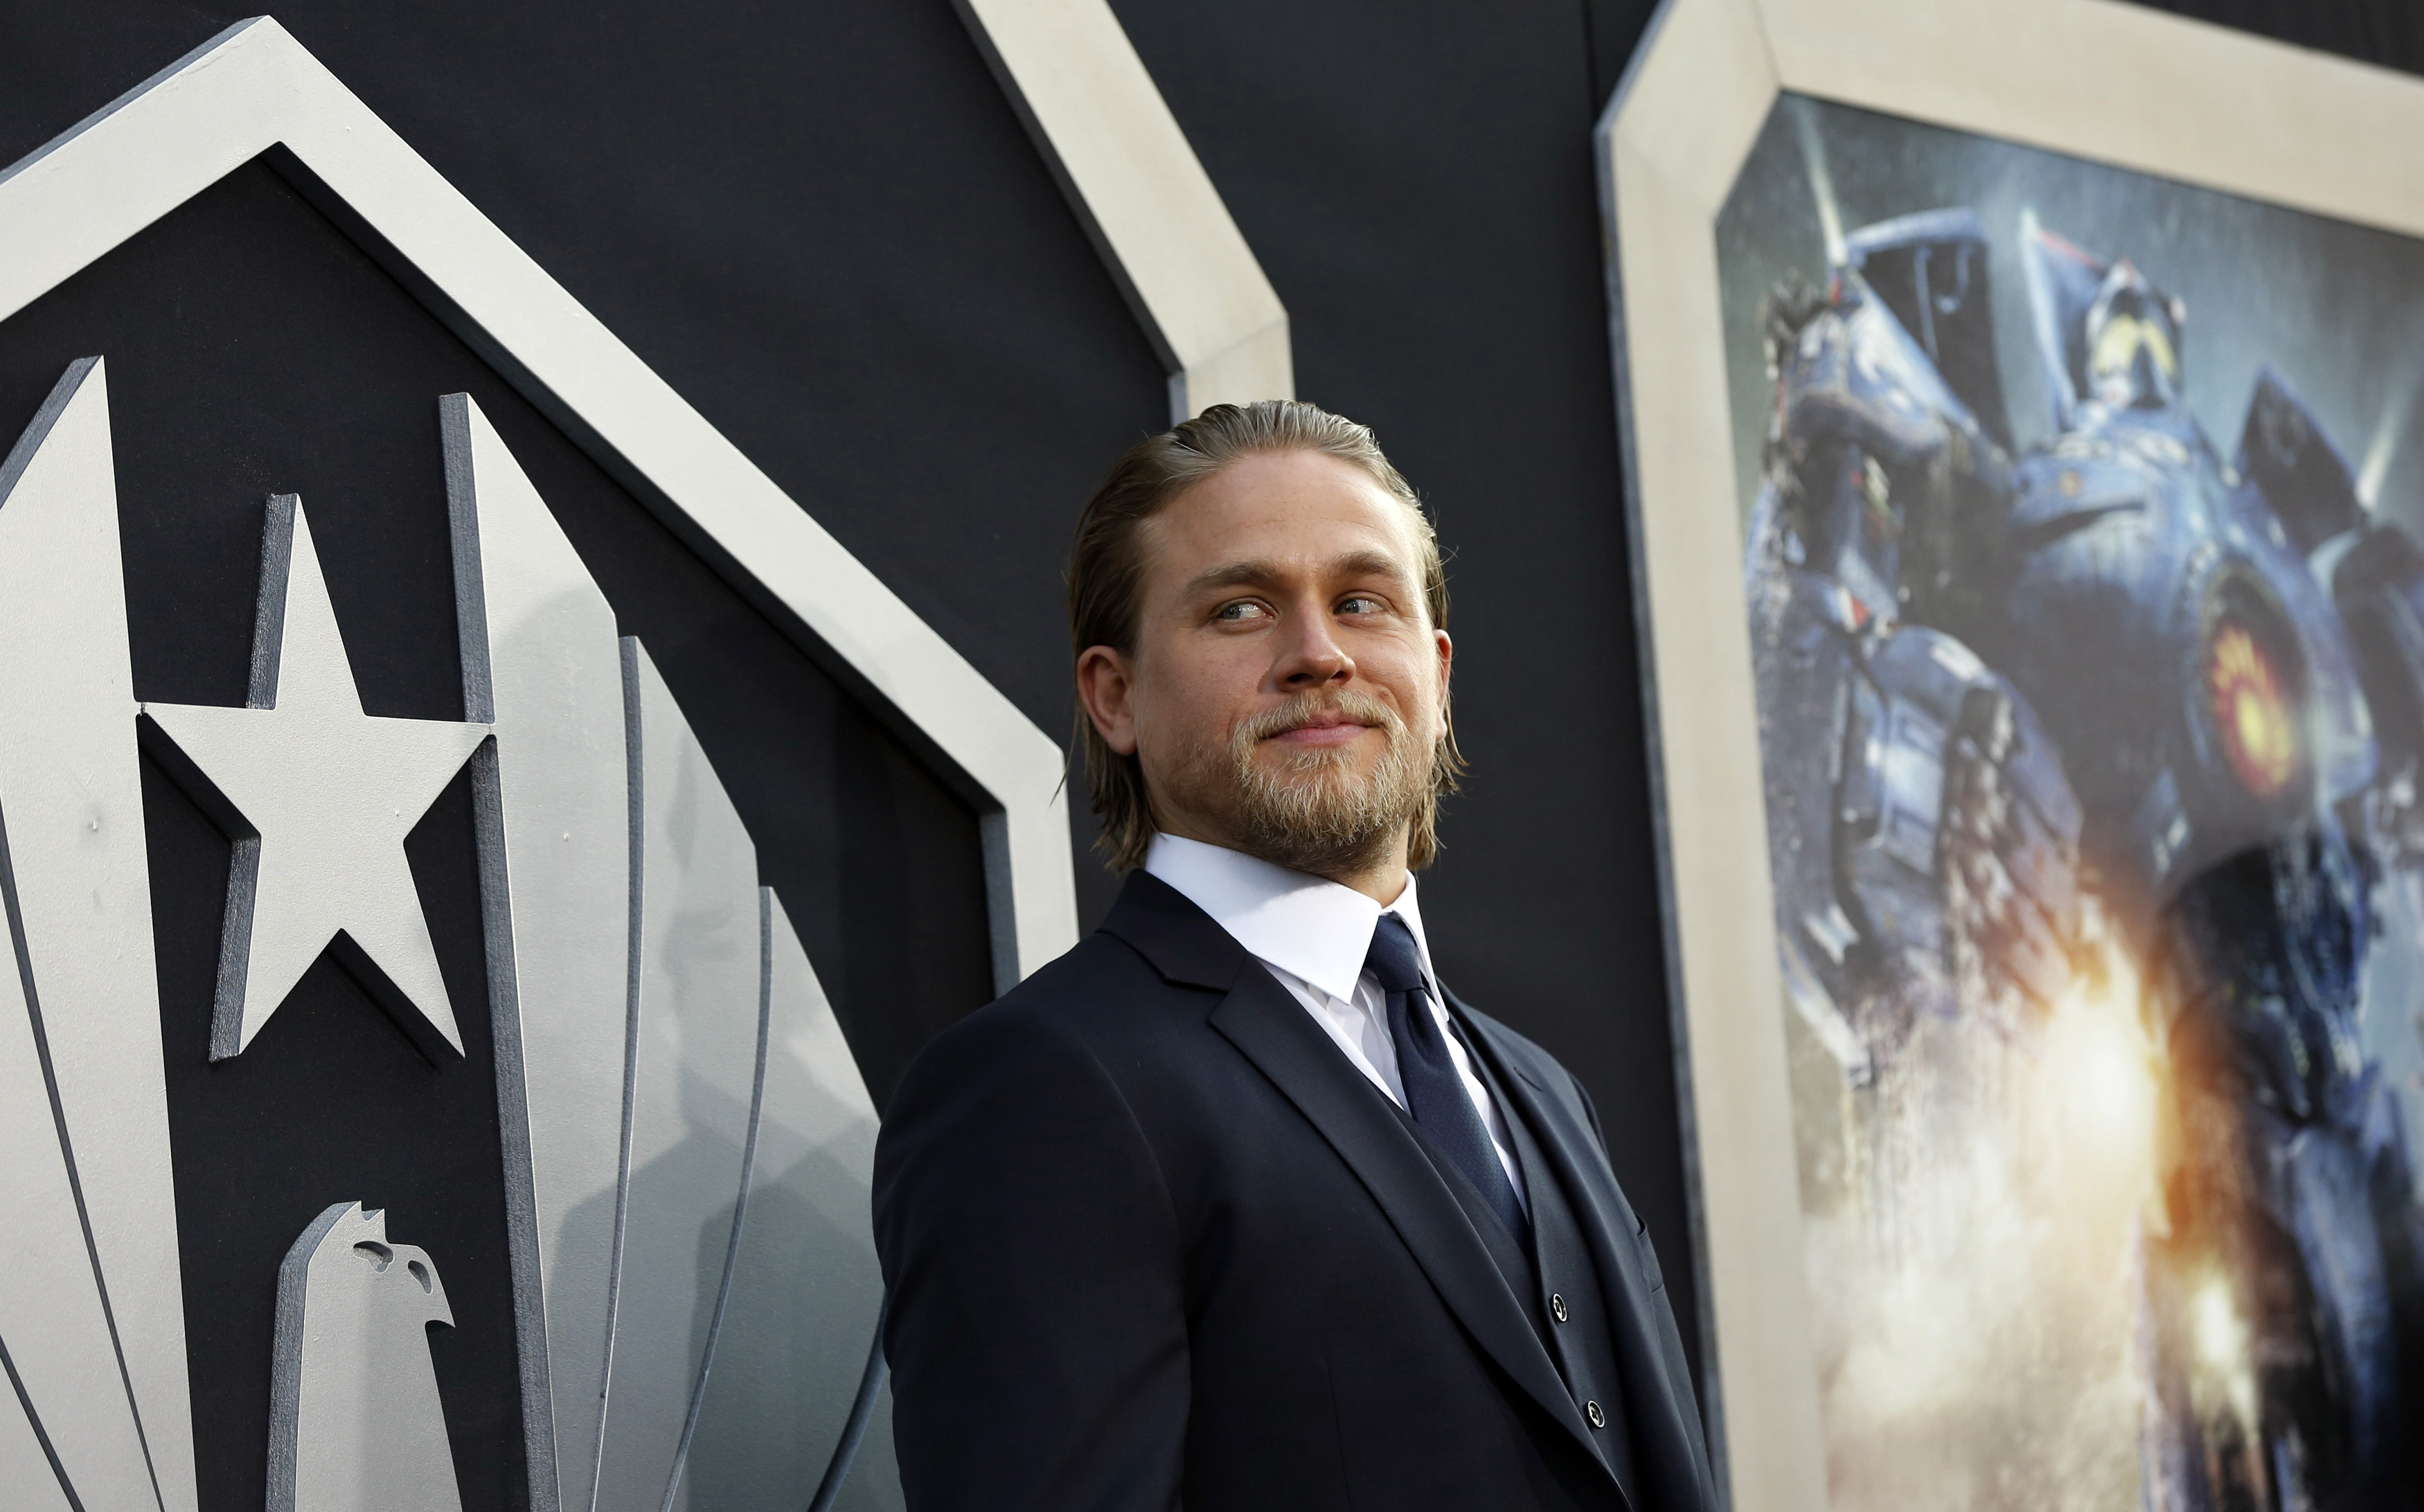 Charlie Hunnam 50 Shades Of Grey Casting Announced For Christian Grey Sons Of Anarchy Star Photos Movies Enstars